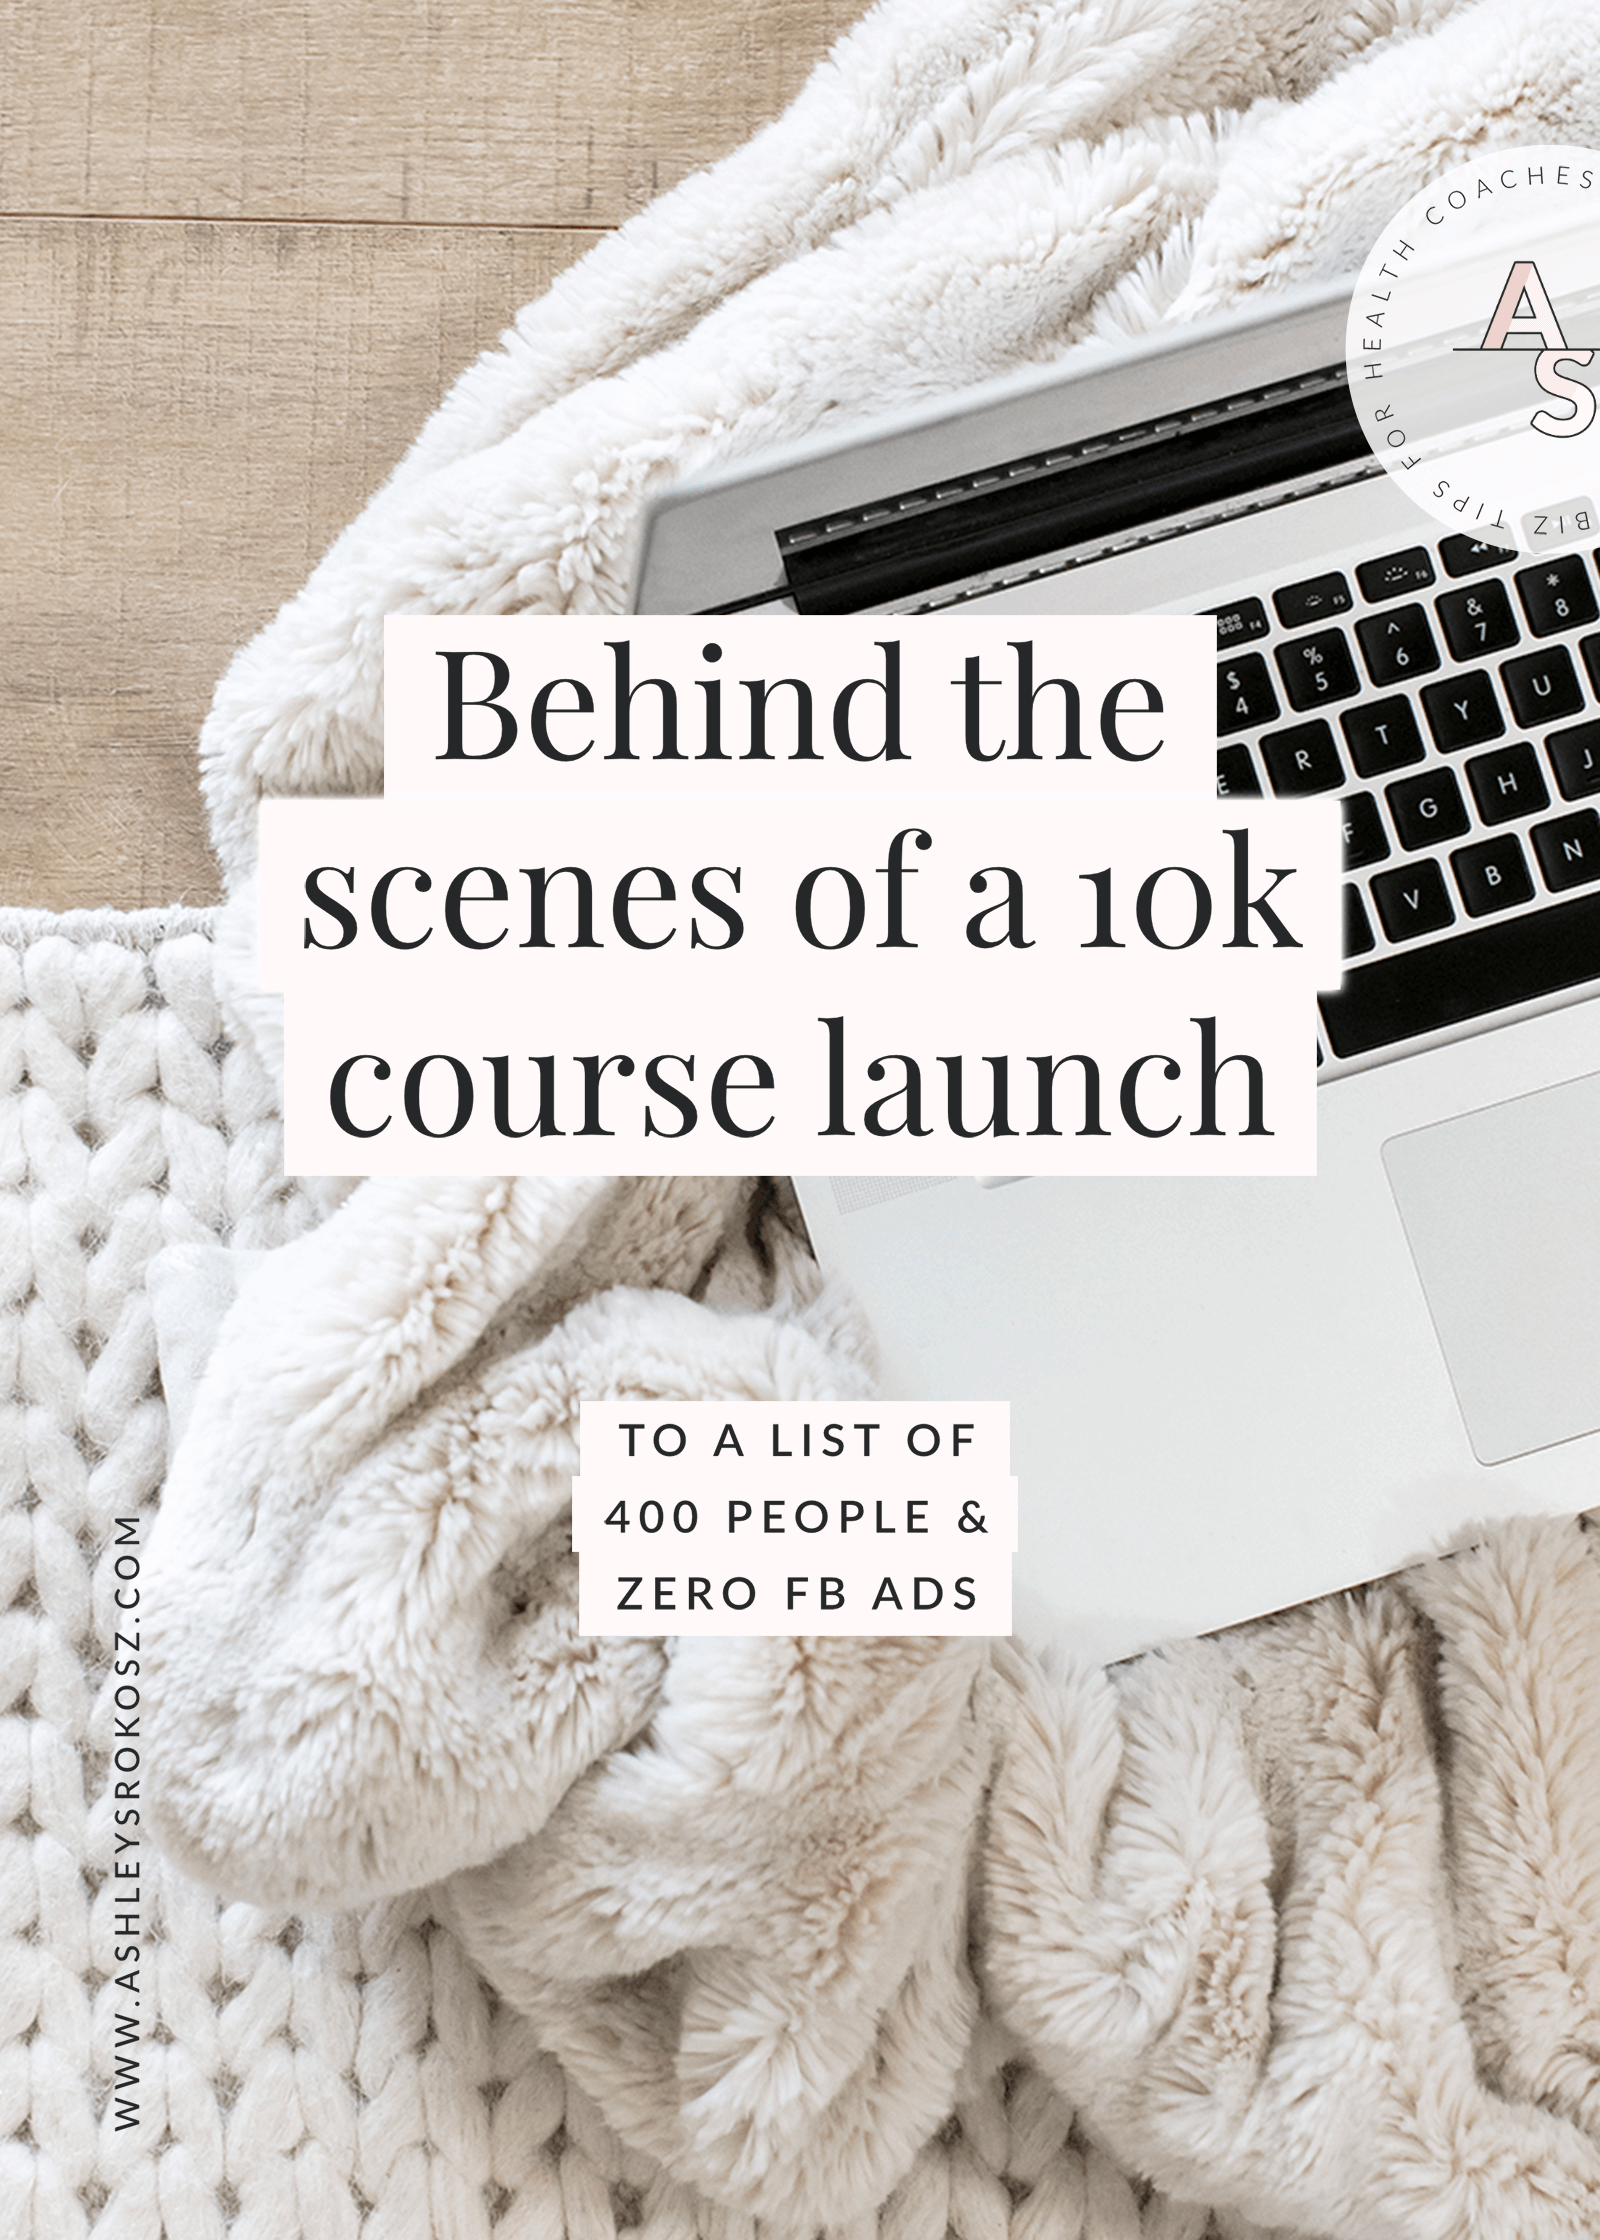 Are you a holistic health coach who is ready to launch an online program? Check out the behind-the-scenes of a $10,000 launch to a list of just 400 emails, including the email sequence and sales from them. This is perfect for holistic nutritionists, health coaches, or yoga teachers who want to get online.